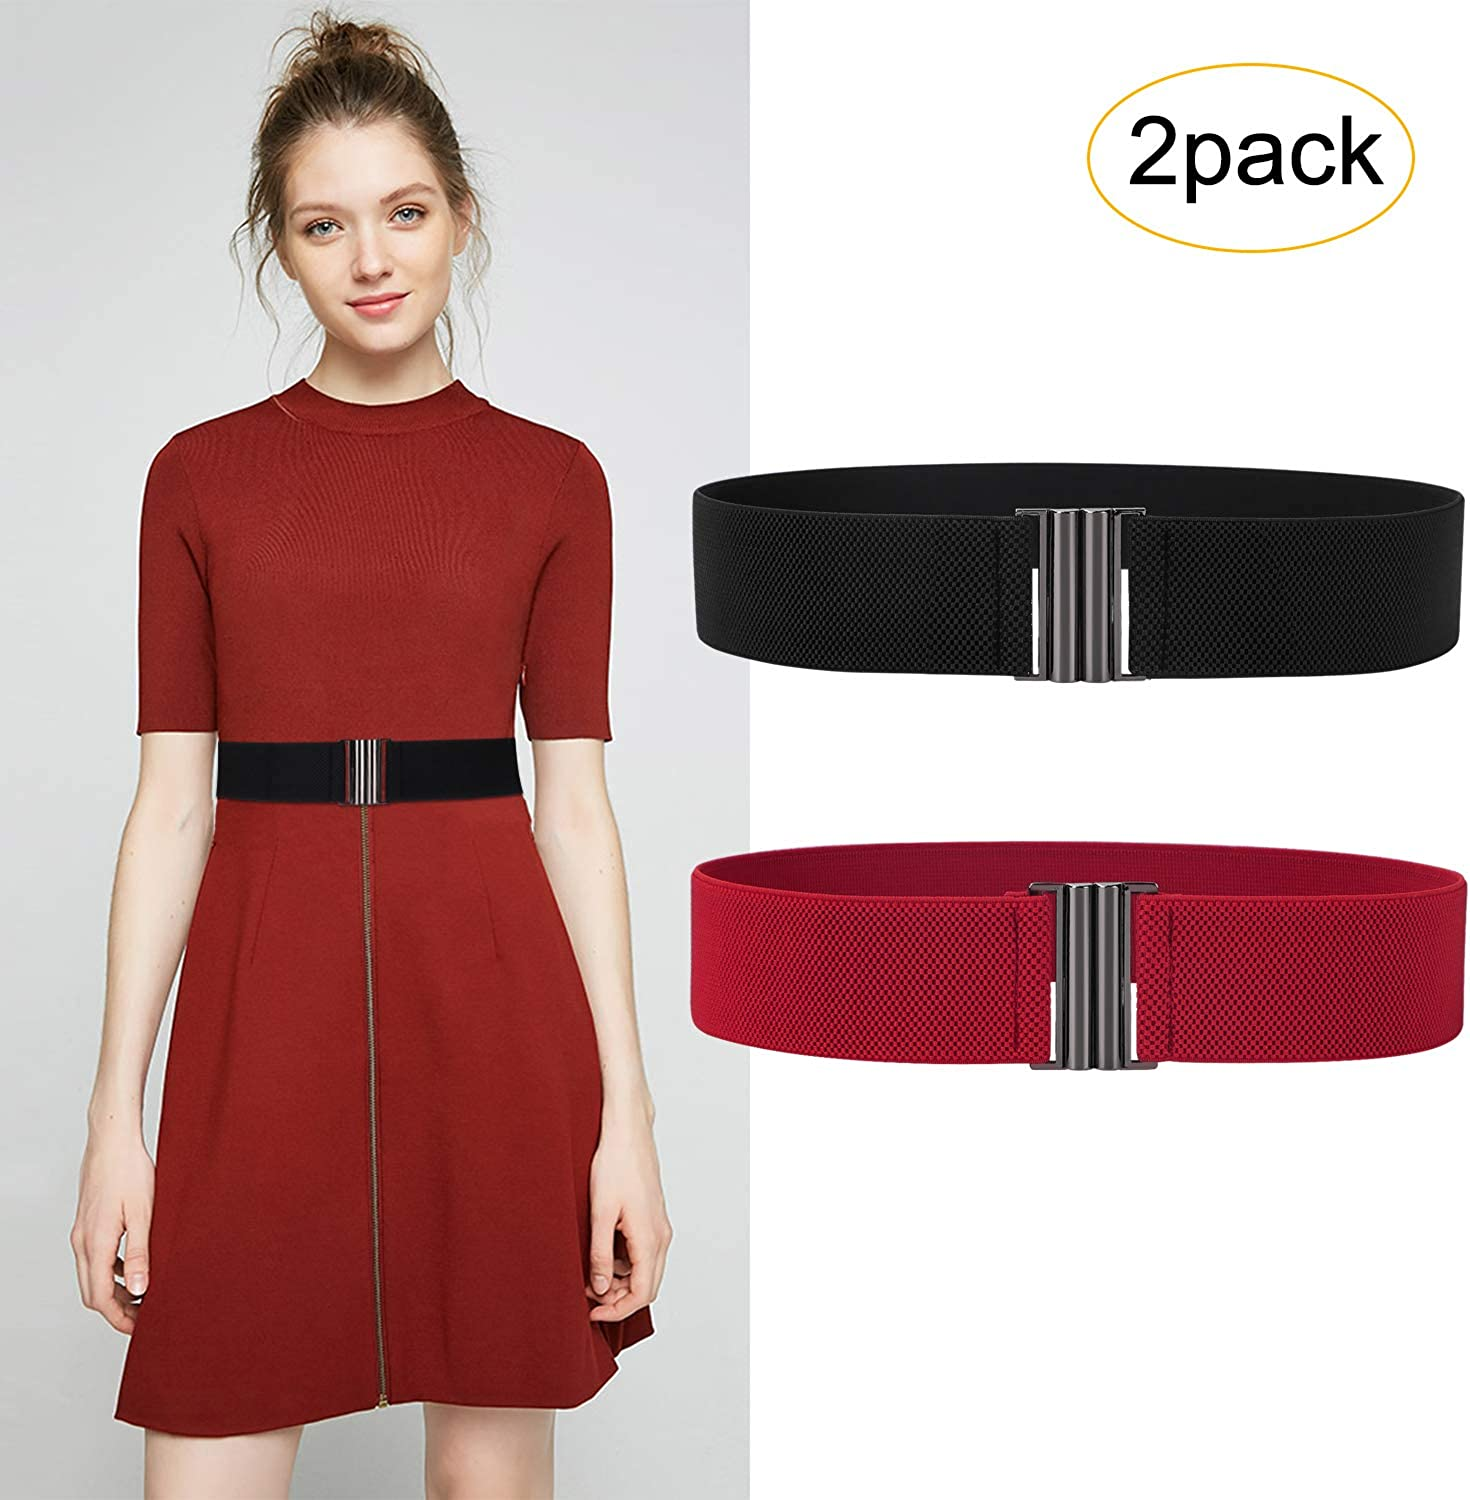 Elastic Belt For Women Invisible Adjustable No Show Ladies Stretch Belt by SUOSDEY